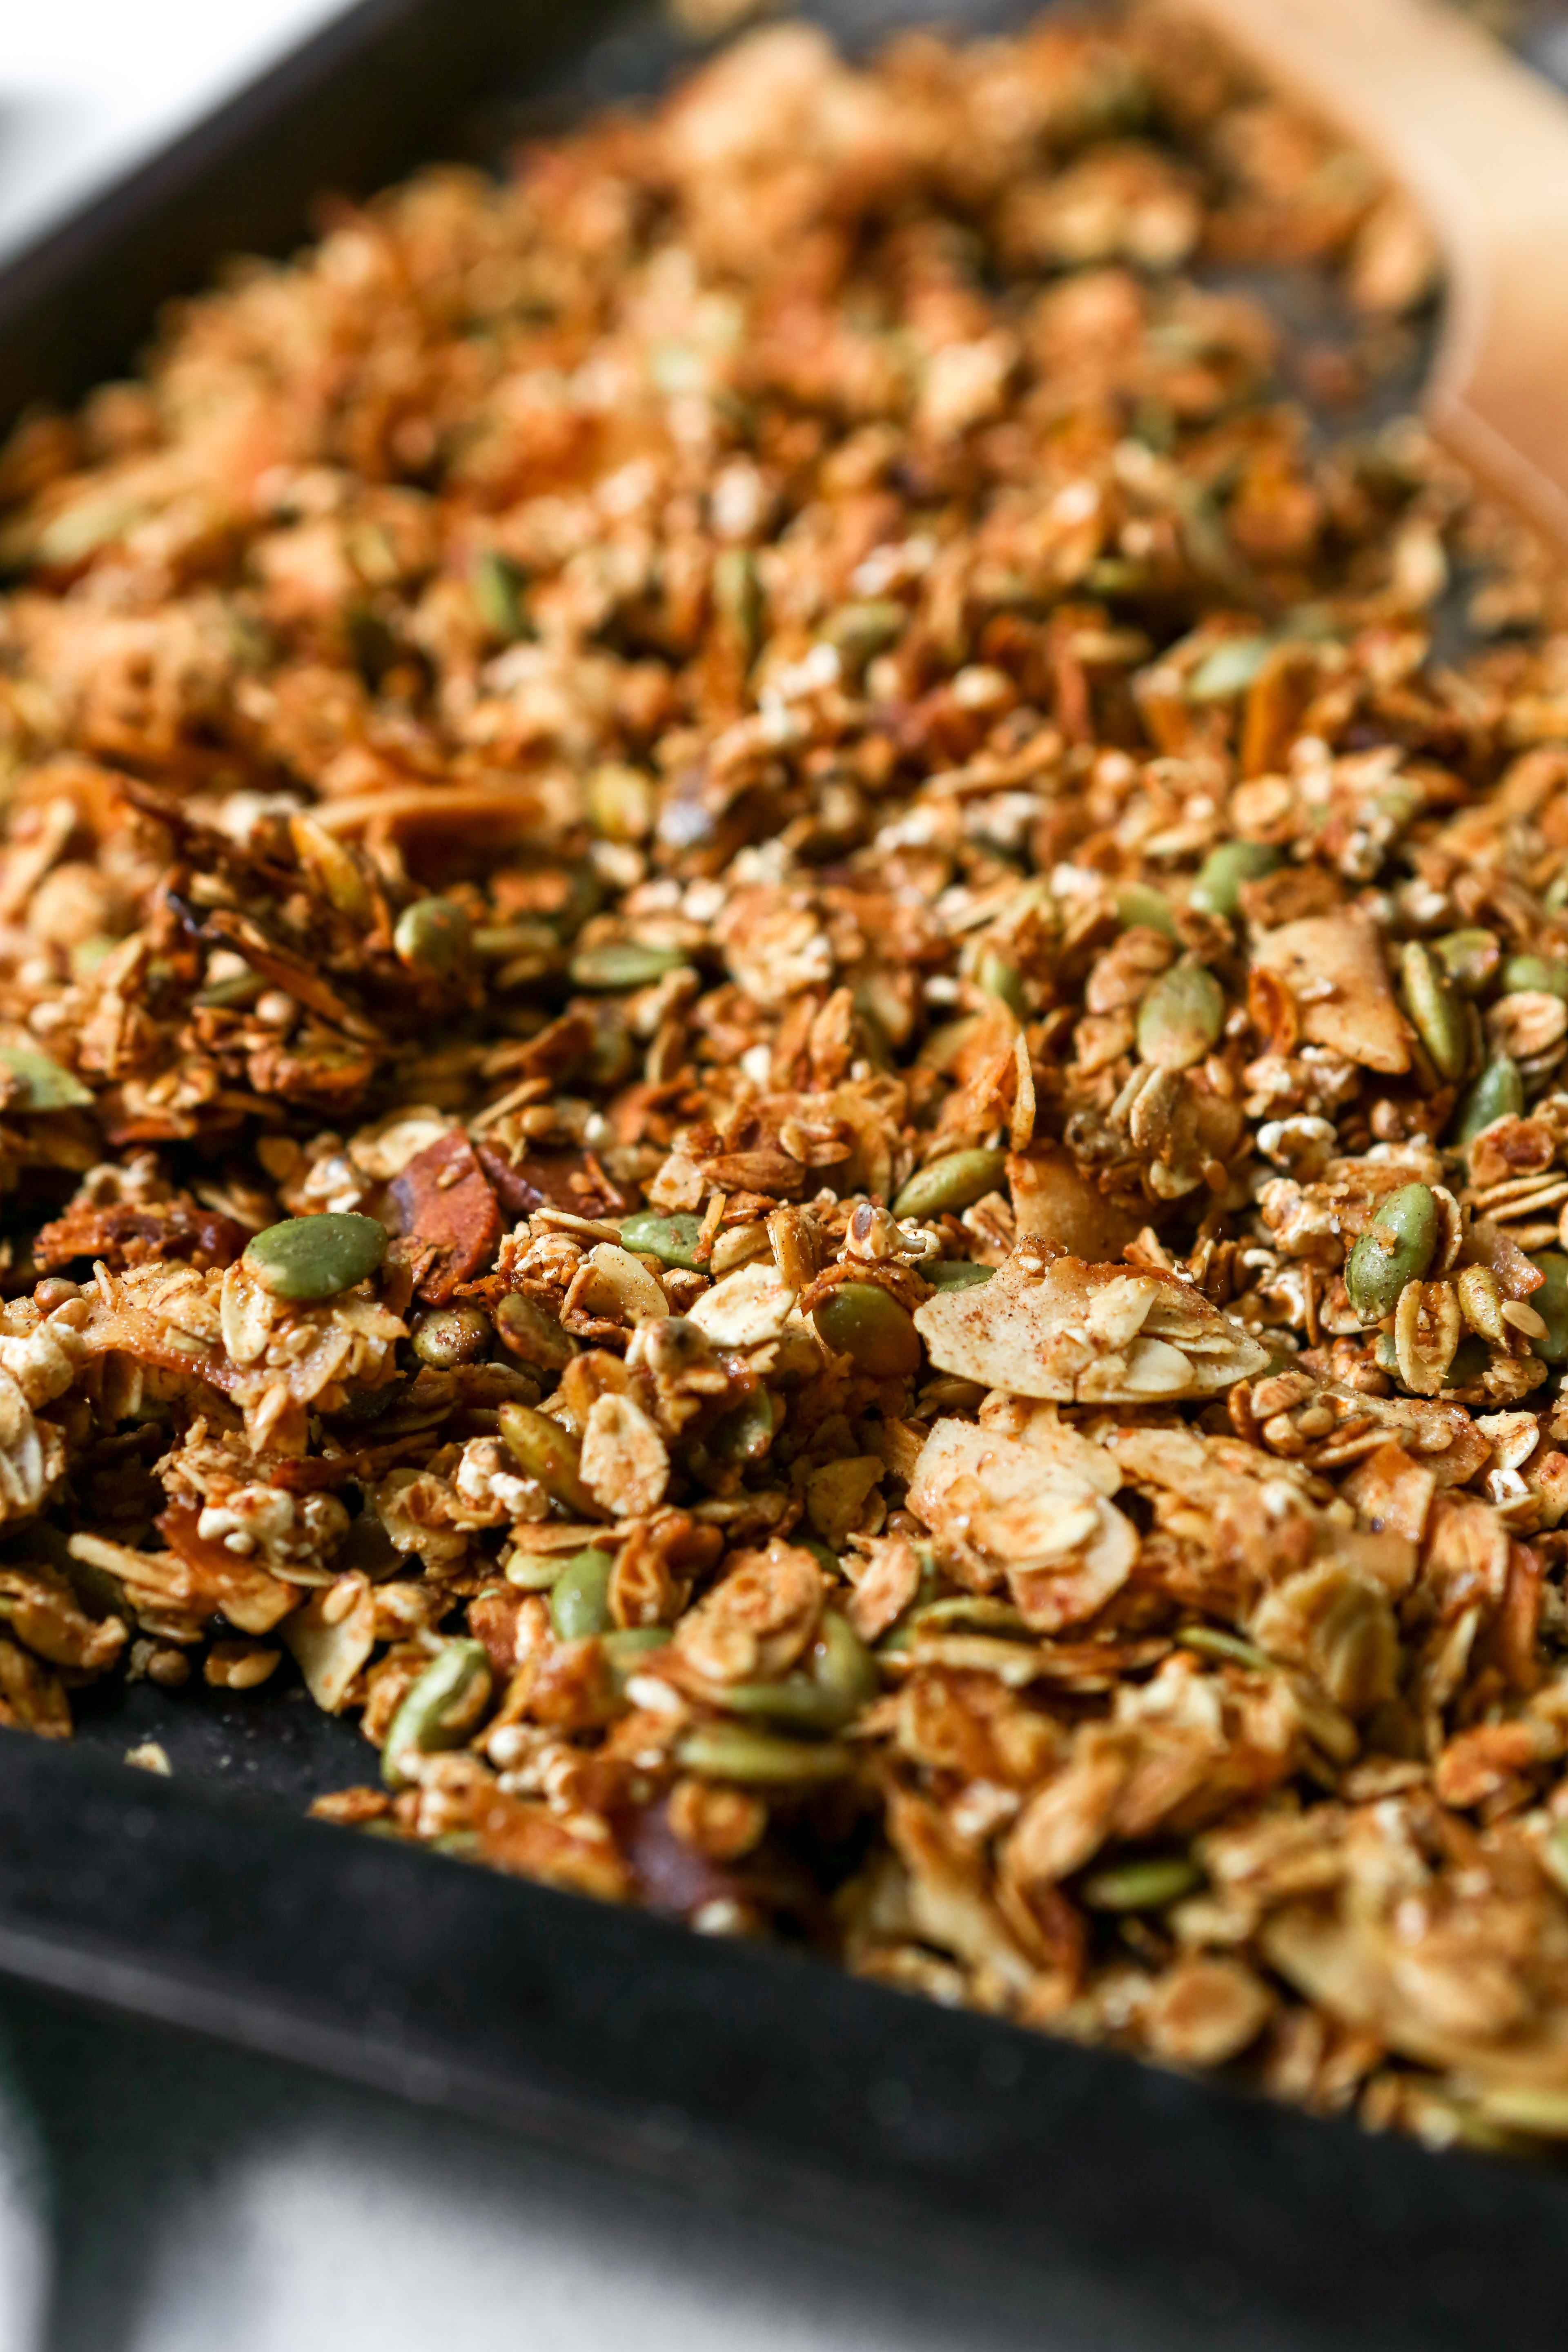 Homemade Healthy Granola Recipe With Popped Sorghum